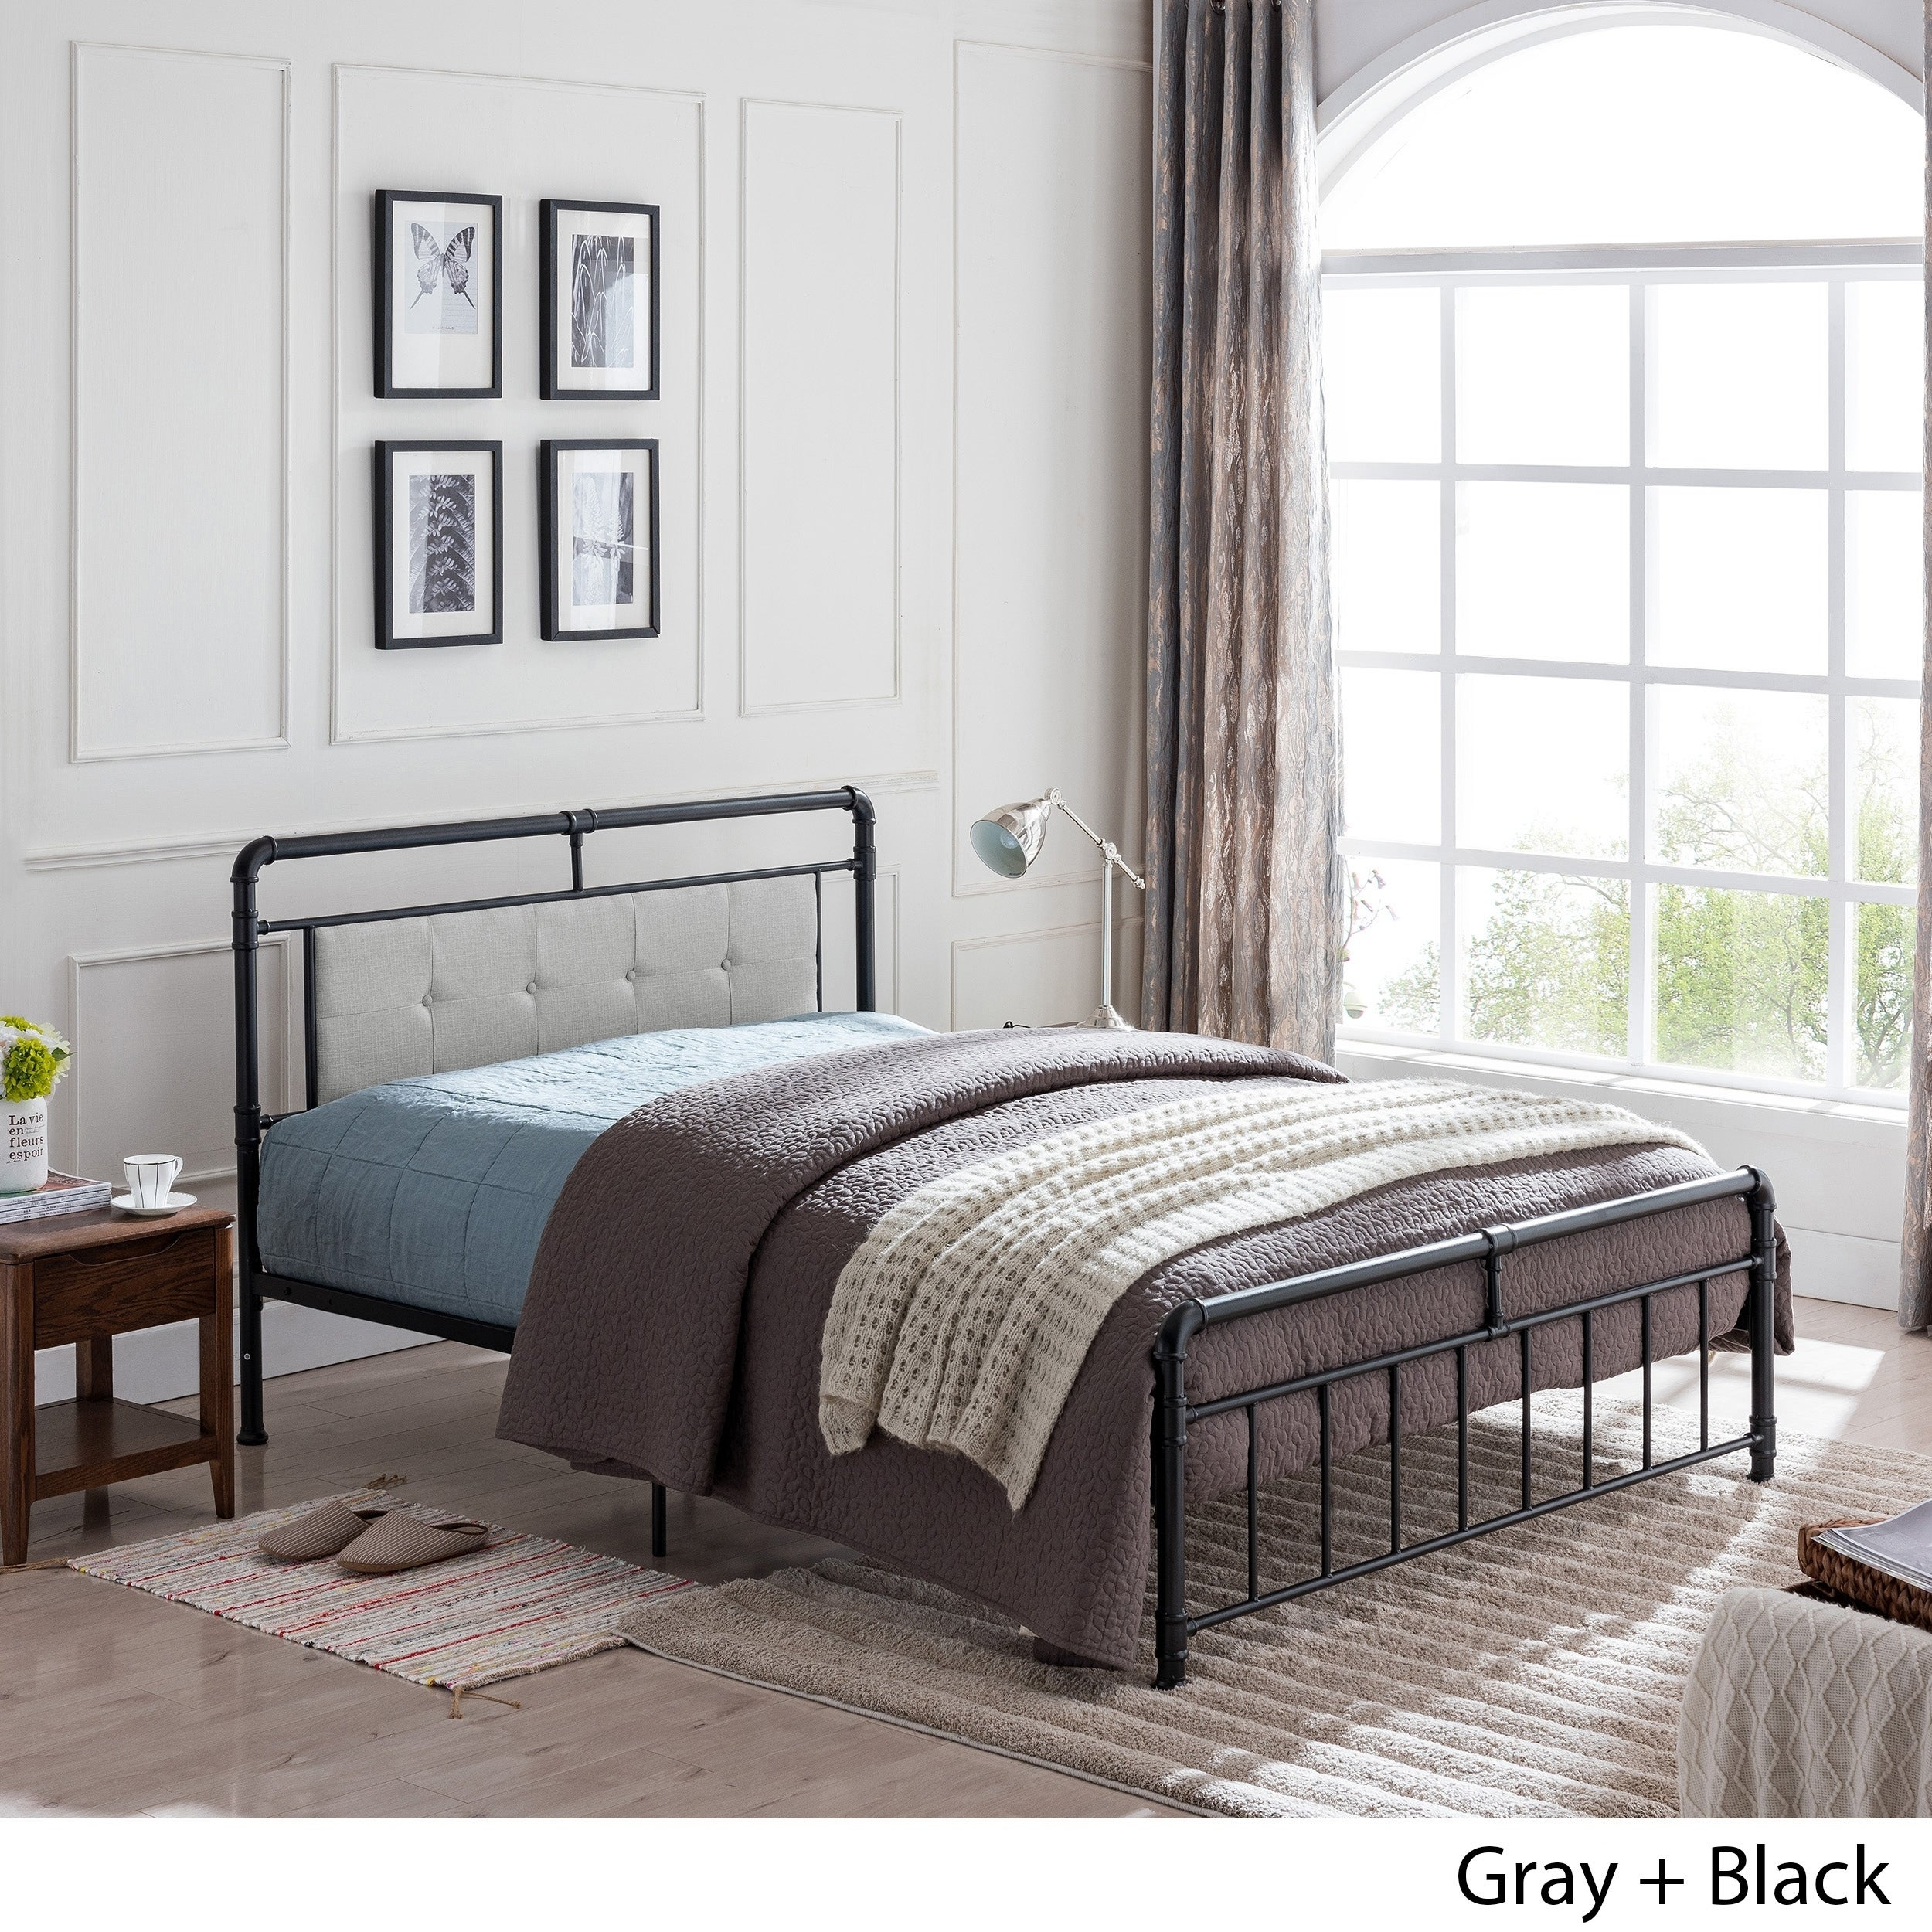 Picture of: Goddard Industrial Upholstered Headboard Queen Size Bed Frame By Christopher Knight Home On Sale Overstock 24115054 Gray Black